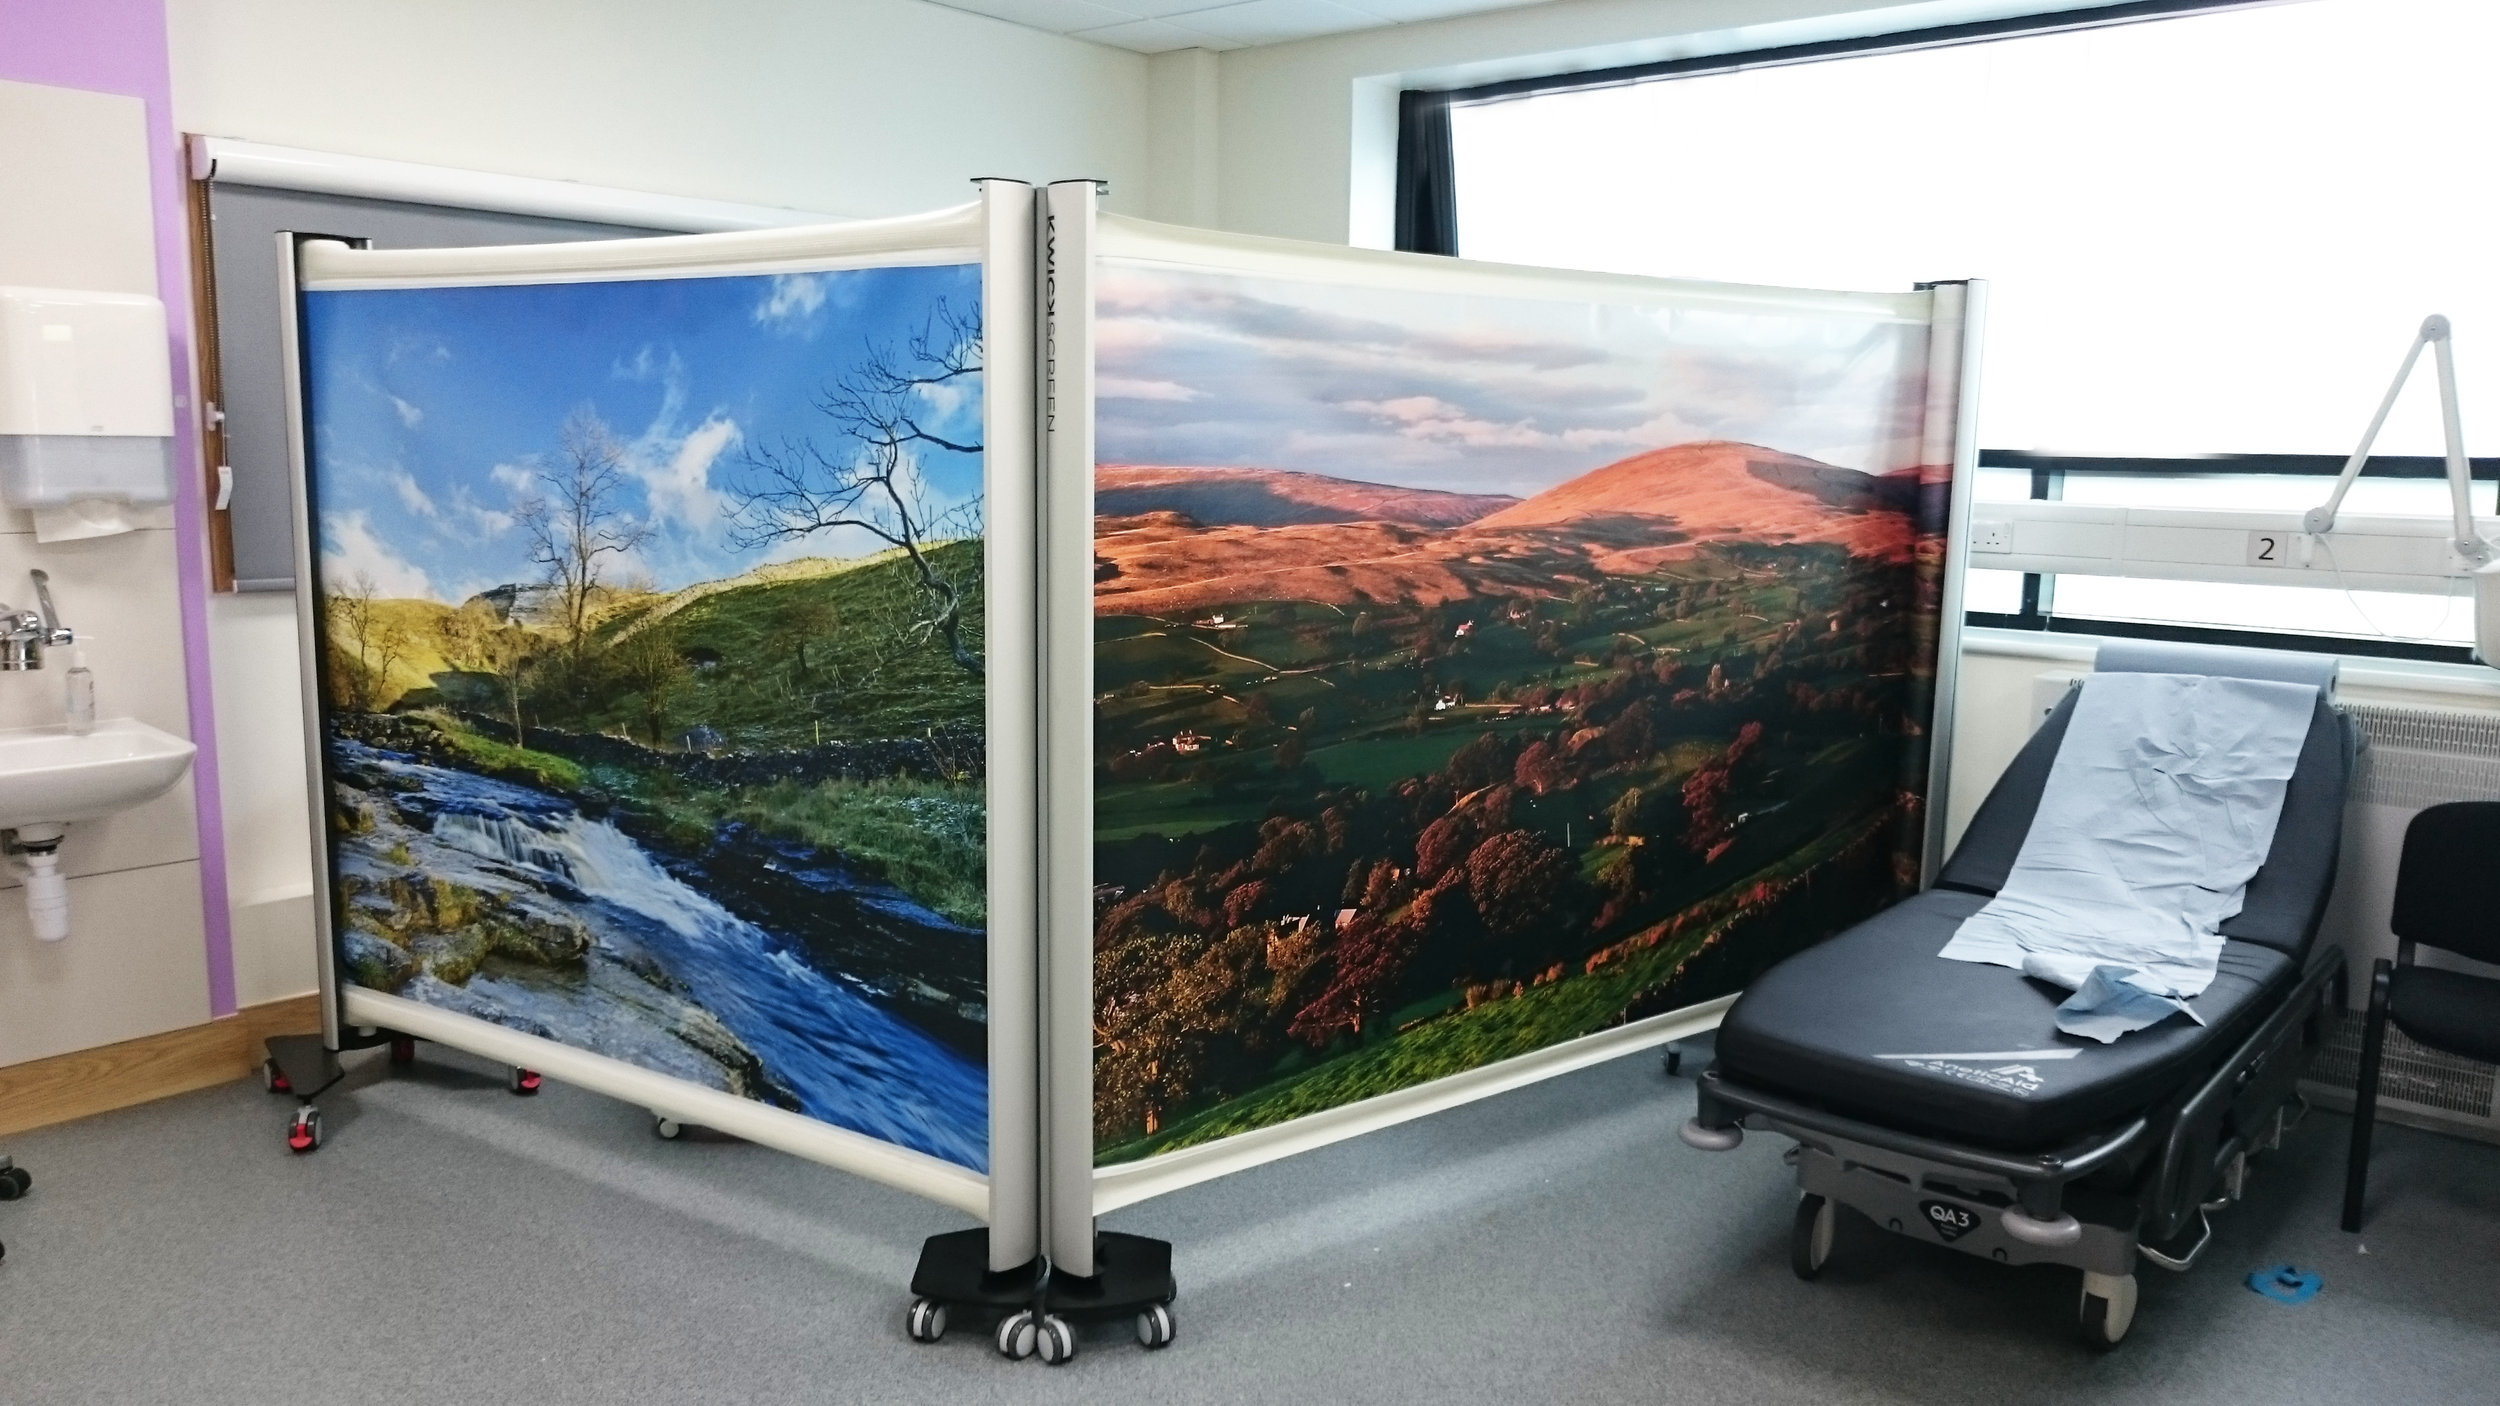 KwickScreen installed at Bradford Royal Infirmary